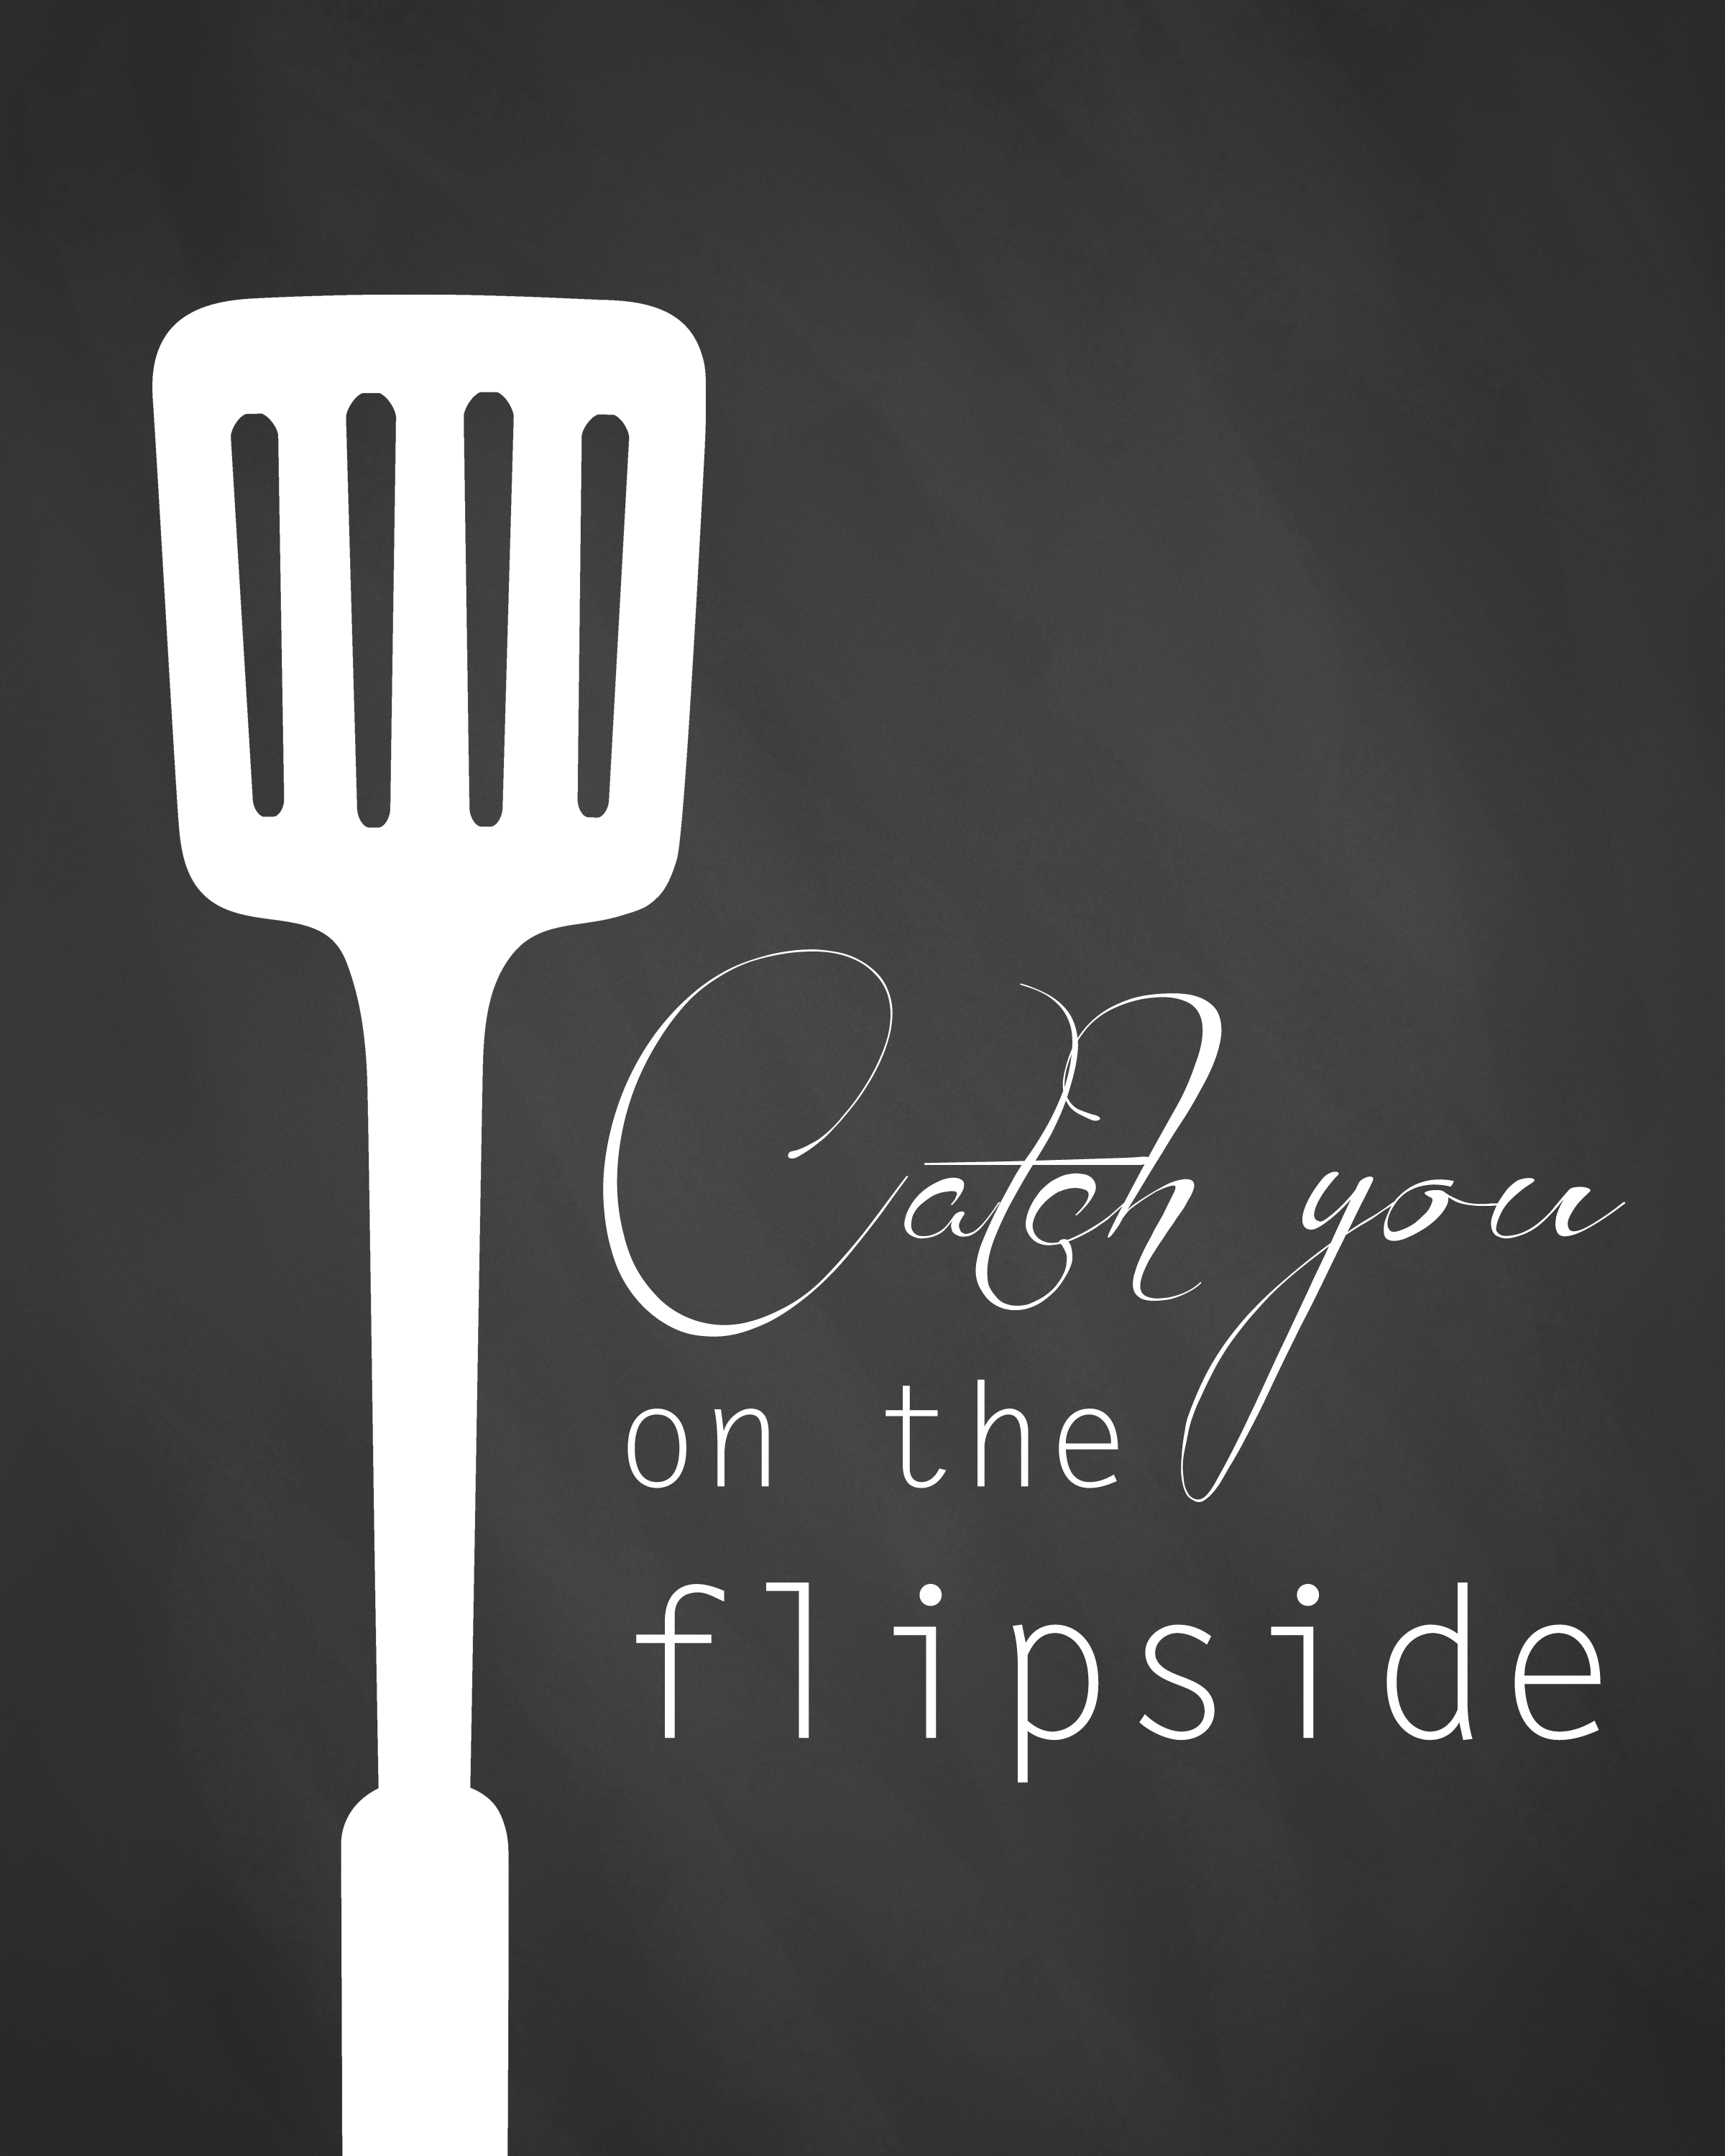 Printable kitchen art - Flipside Kitchen Printable